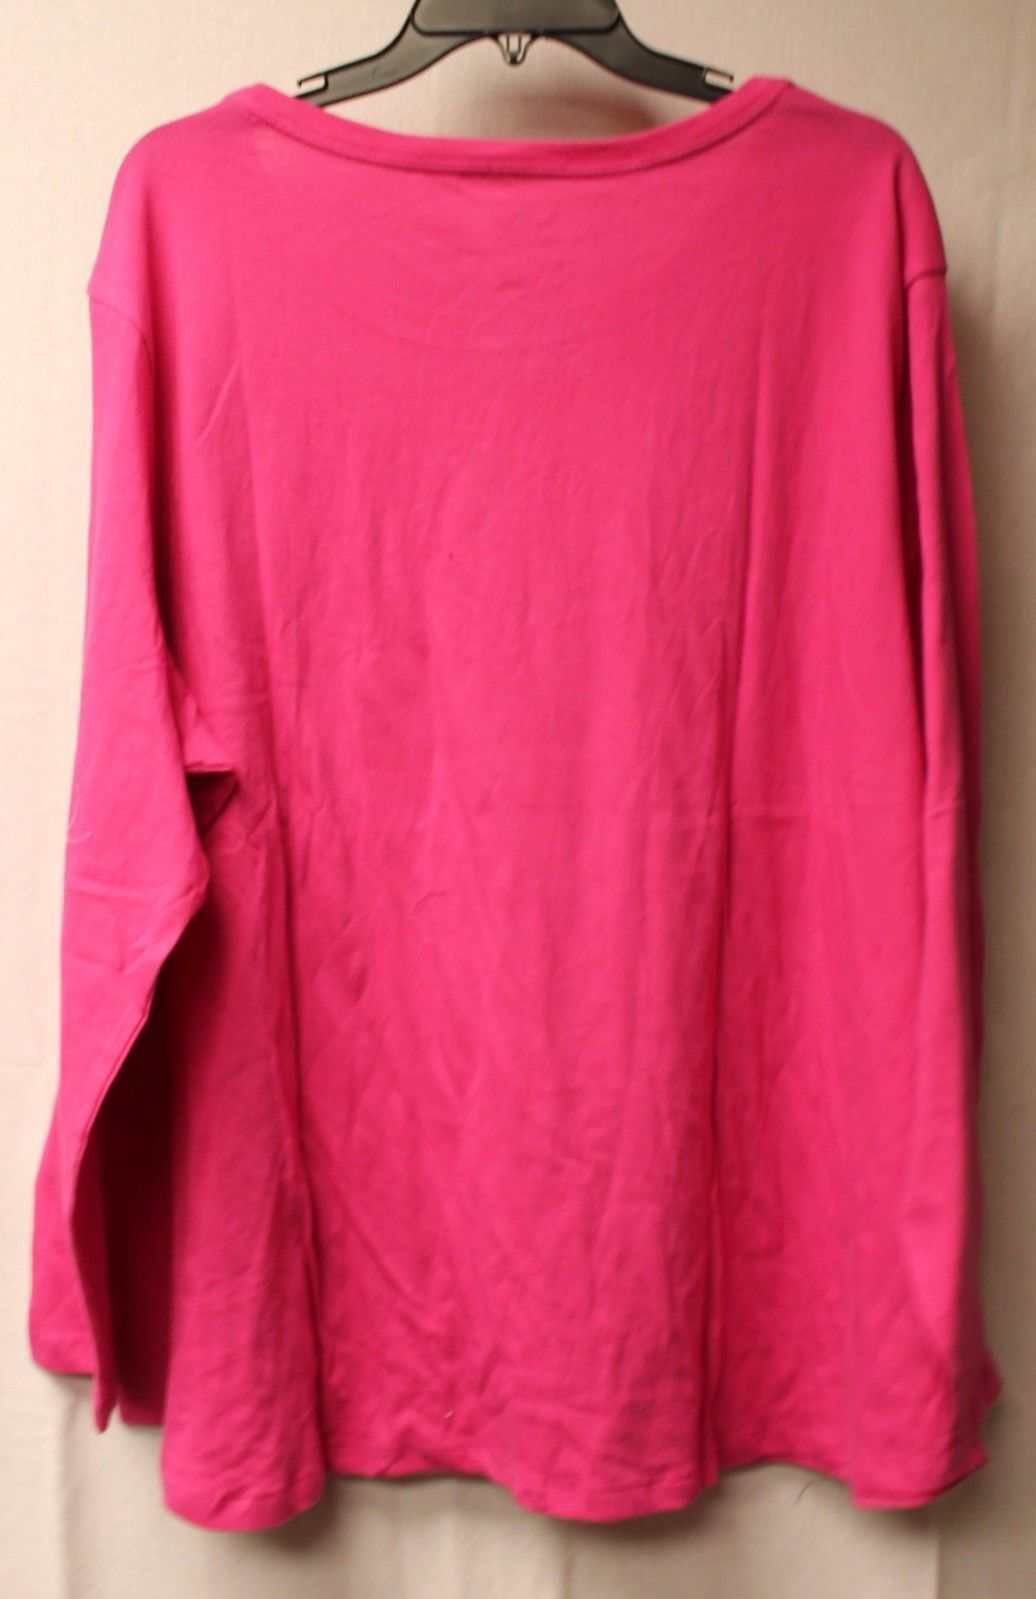 NEW WOMENS PLUS SIZE 4X 26W 28W BRITE PINK LONG SLEEVE CREW NECK TEE T SHIRT TOP